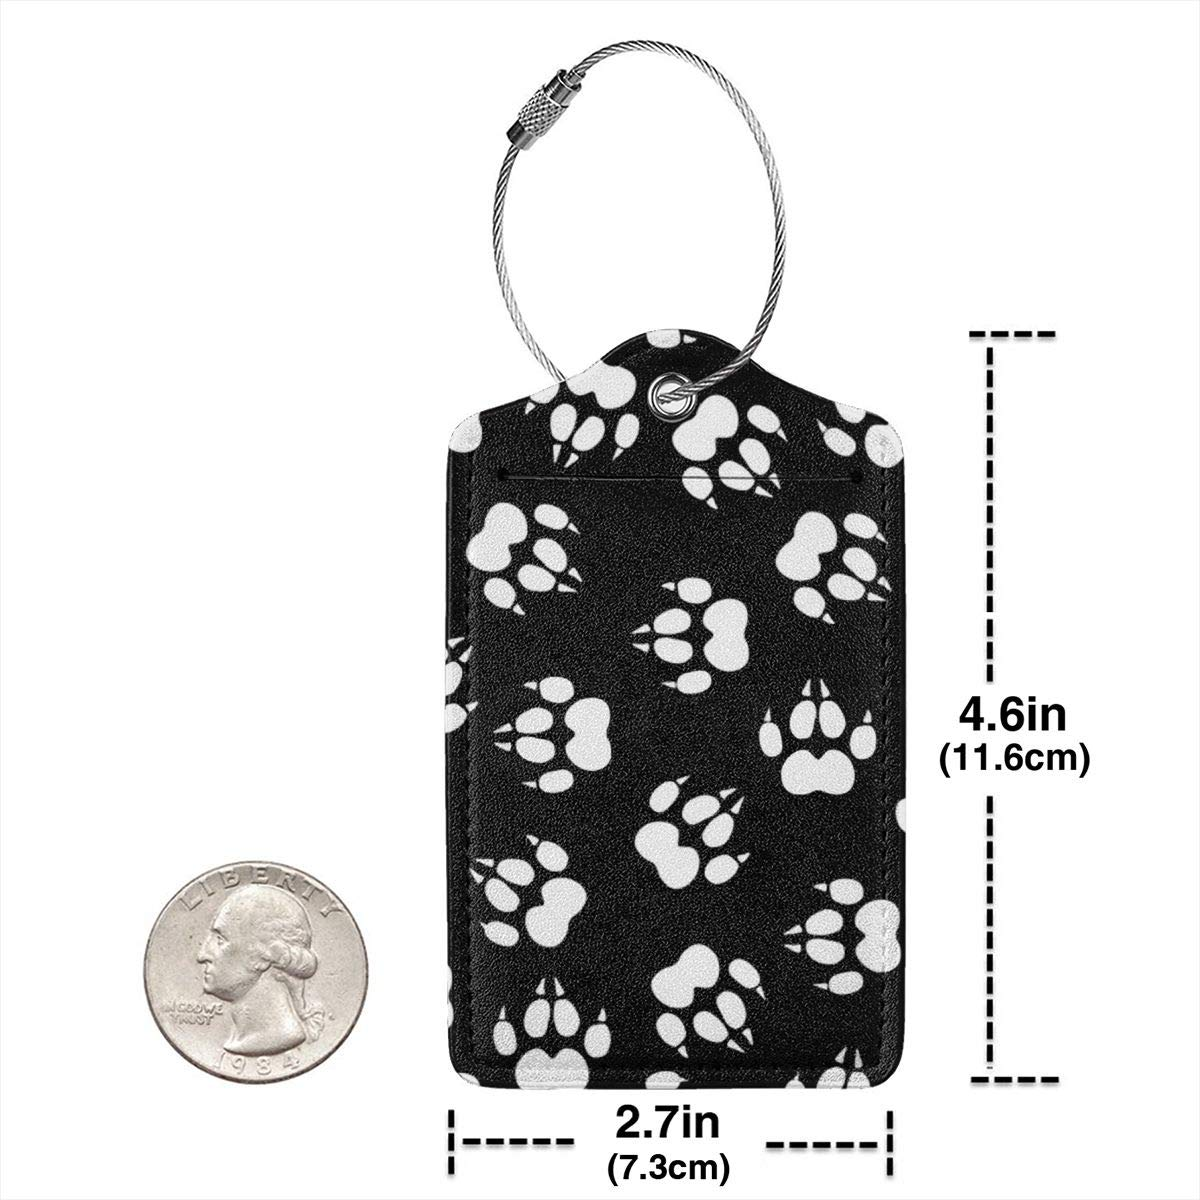 Wolf Paw Prints Leather Luggage Tags Baggage Bag Instrument Tag Travel Labels Accessories with Privacy Cover